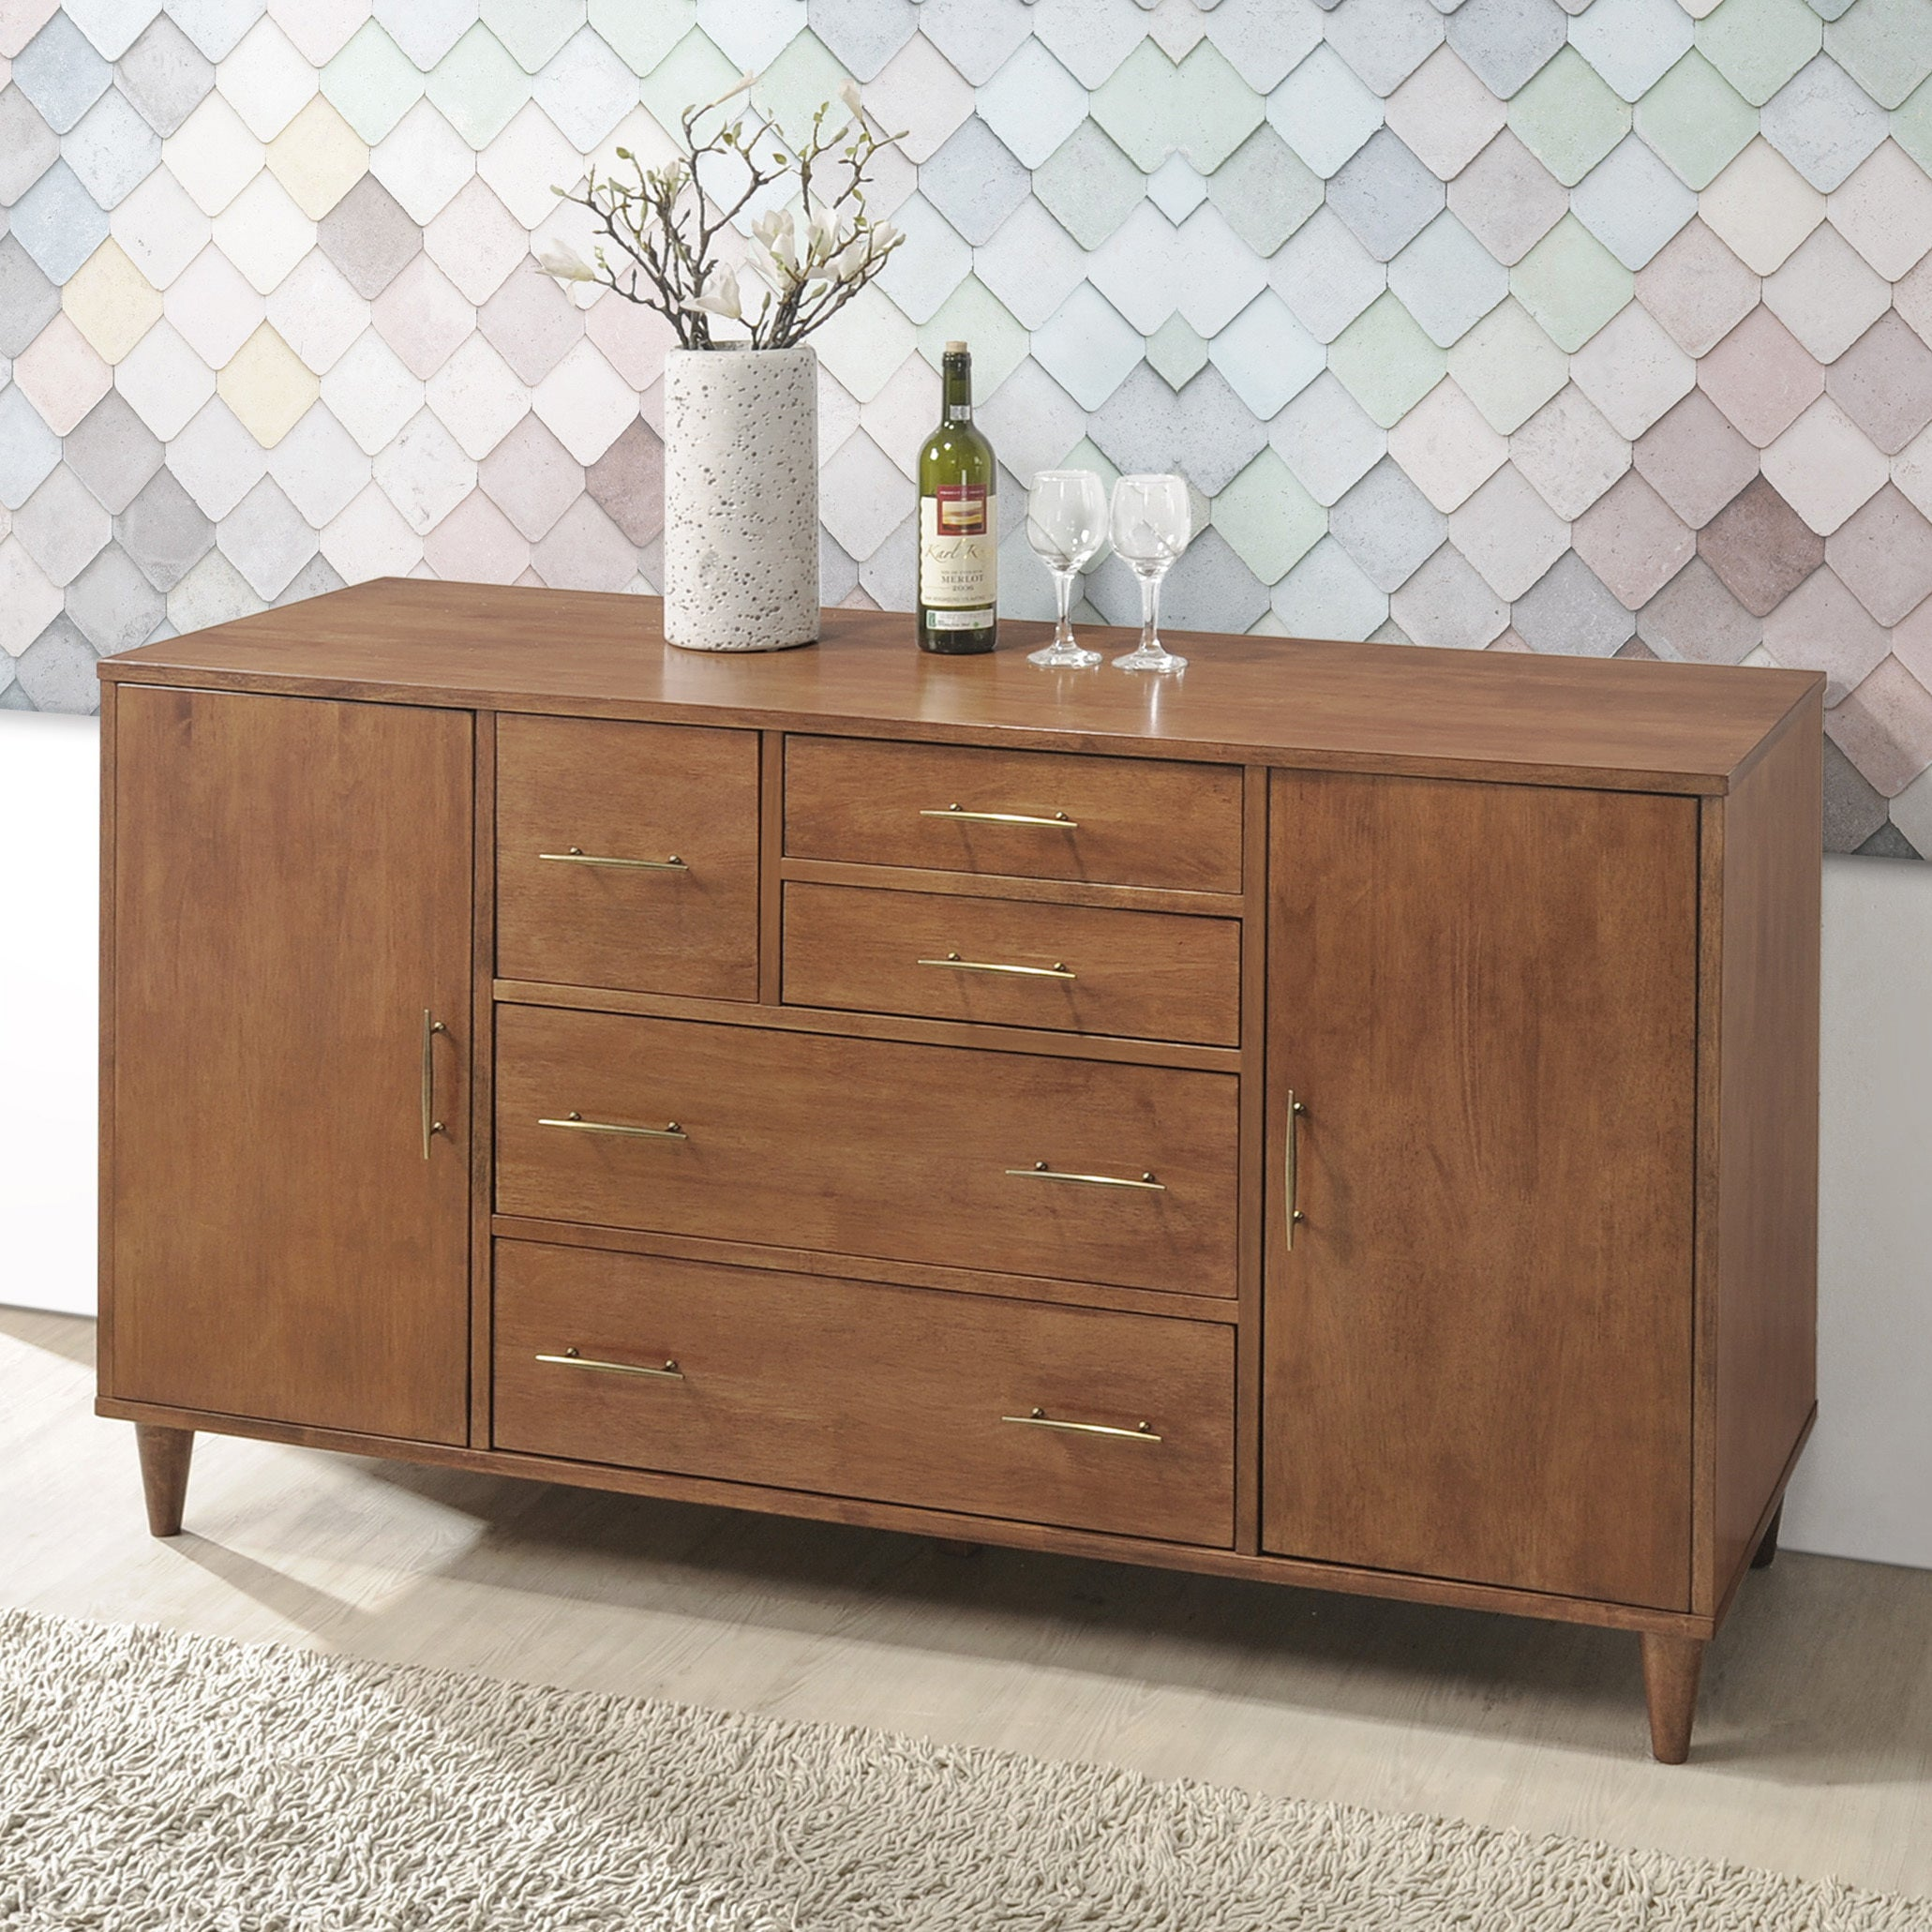 Shop Jasper Laine Ana Oak Dining Room Buffet   Free Shipping Today    Overstock.com   16094208